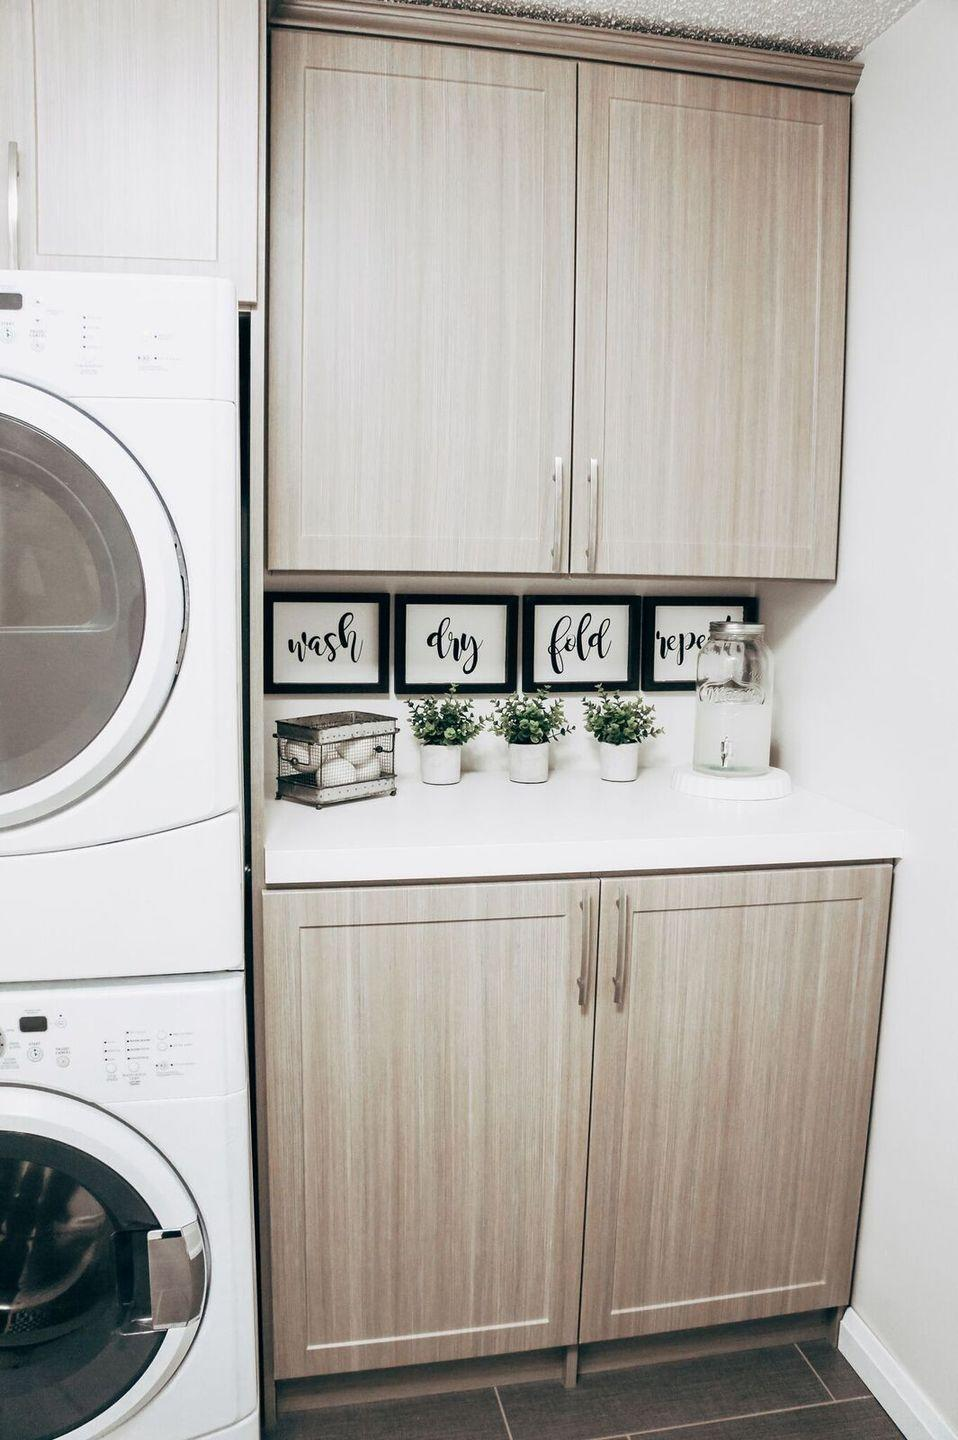 "<p>You'll be pleased to know that you can make these absolutely adorable farmhouse signs for your laundry room with artist panels scored at the dollar store. </p><p><strong>Get the tutorial at <a href=""https://www.robynjohanna.com/diy-dollar-store-farmhouse-sign/"" rel=""nofollow noopener"" target=""_blank"" data-ylk=""slk:Robyn Johanna"" class=""link rapid-noclick-resp"">Robyn Johanna</a>.</strong></p><p><a class=""link rapid-noclick-resp"" href=""https://www.amazon.com/gp/product/B017NNJQWE/?tag=syn-yahoo-20&ascsubtag=%5Bartid%7C10050.g.31153820%5Bsrc%7Cyahoo-us"" rel=""nofollow noopener"" target=""_blank"" data-ylk=""slk:SHOP WOOD STAIN"">SHOP WOOD STAIN</a></p>"